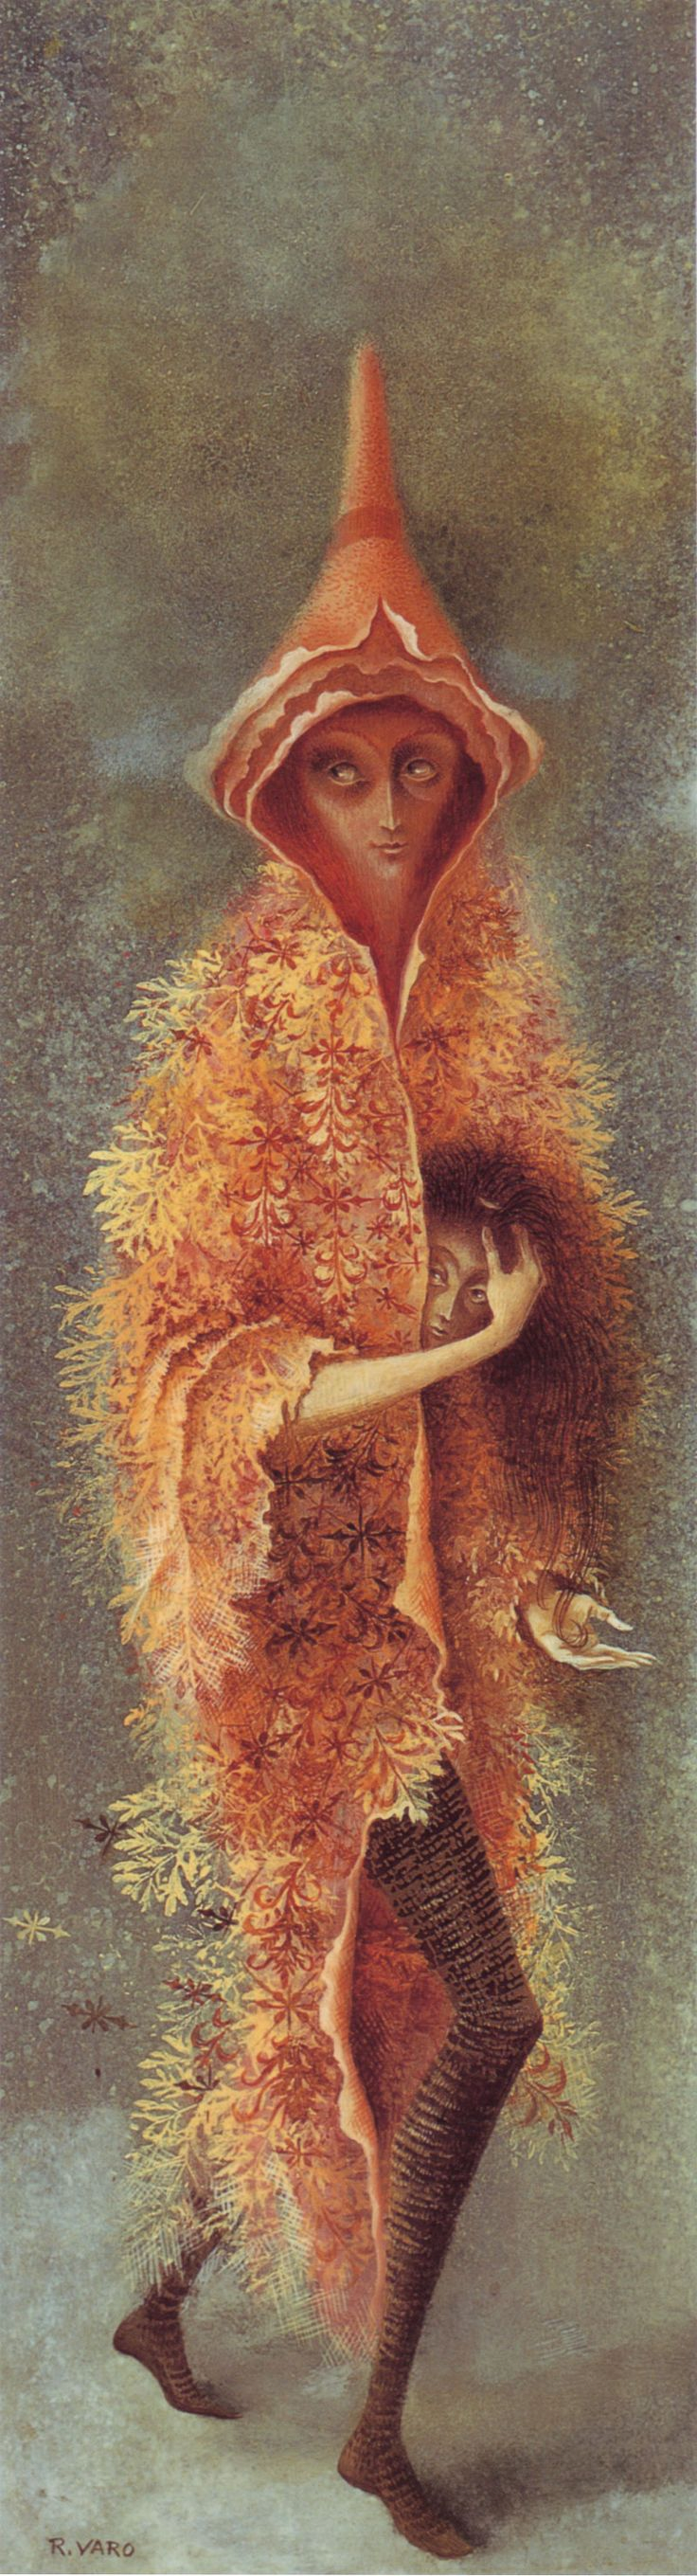 Remedios Varo, Personaje (Personage), oil on masonite, 1959.